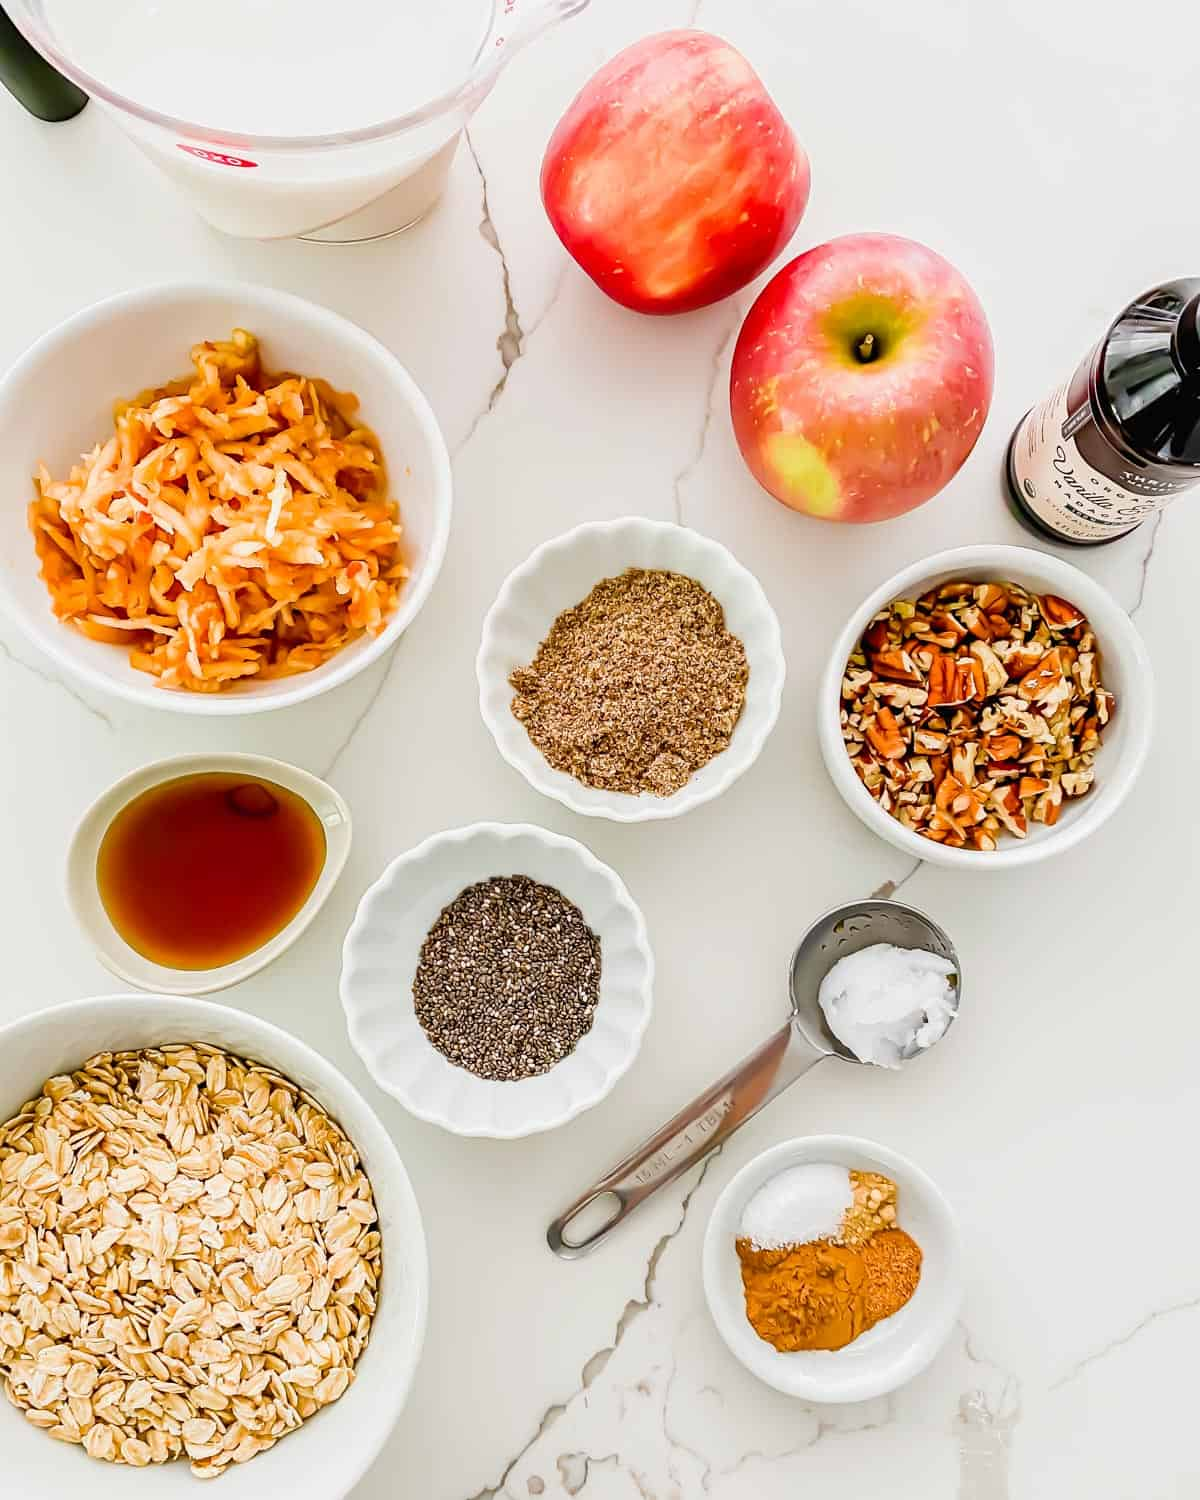 Ingredients to make apple cinnamon oatmeal: rolled oats, chia seeds, ground flaxseed, cinnamon spices, chopped pecans, grated apple, vanilla extract, maple syrup and coconut oil.